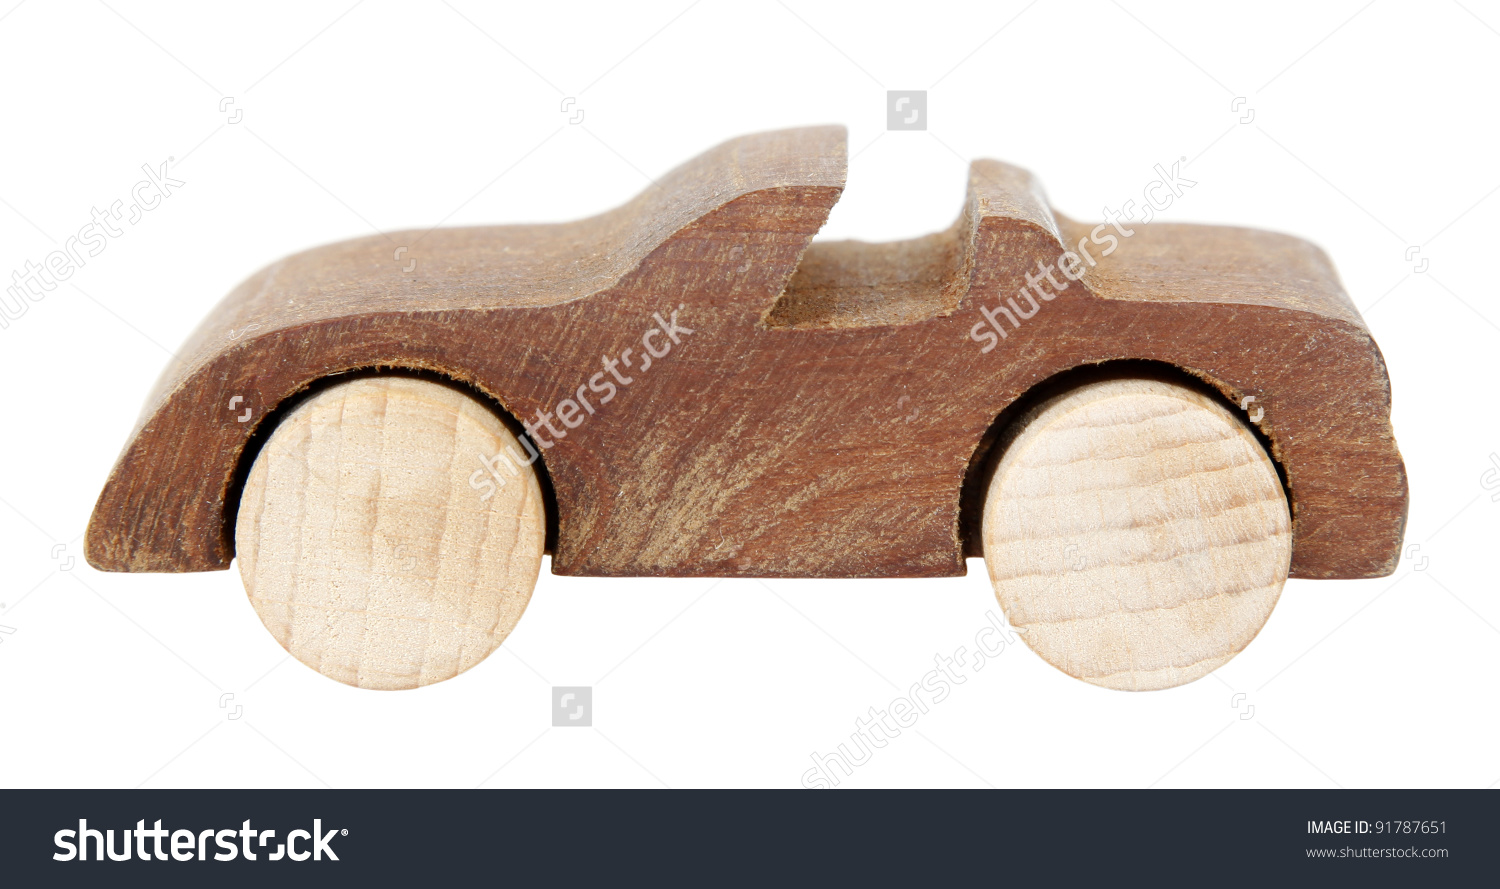 Old Wooden Car Toy Stock Photo 91787651 : Shutterstock.